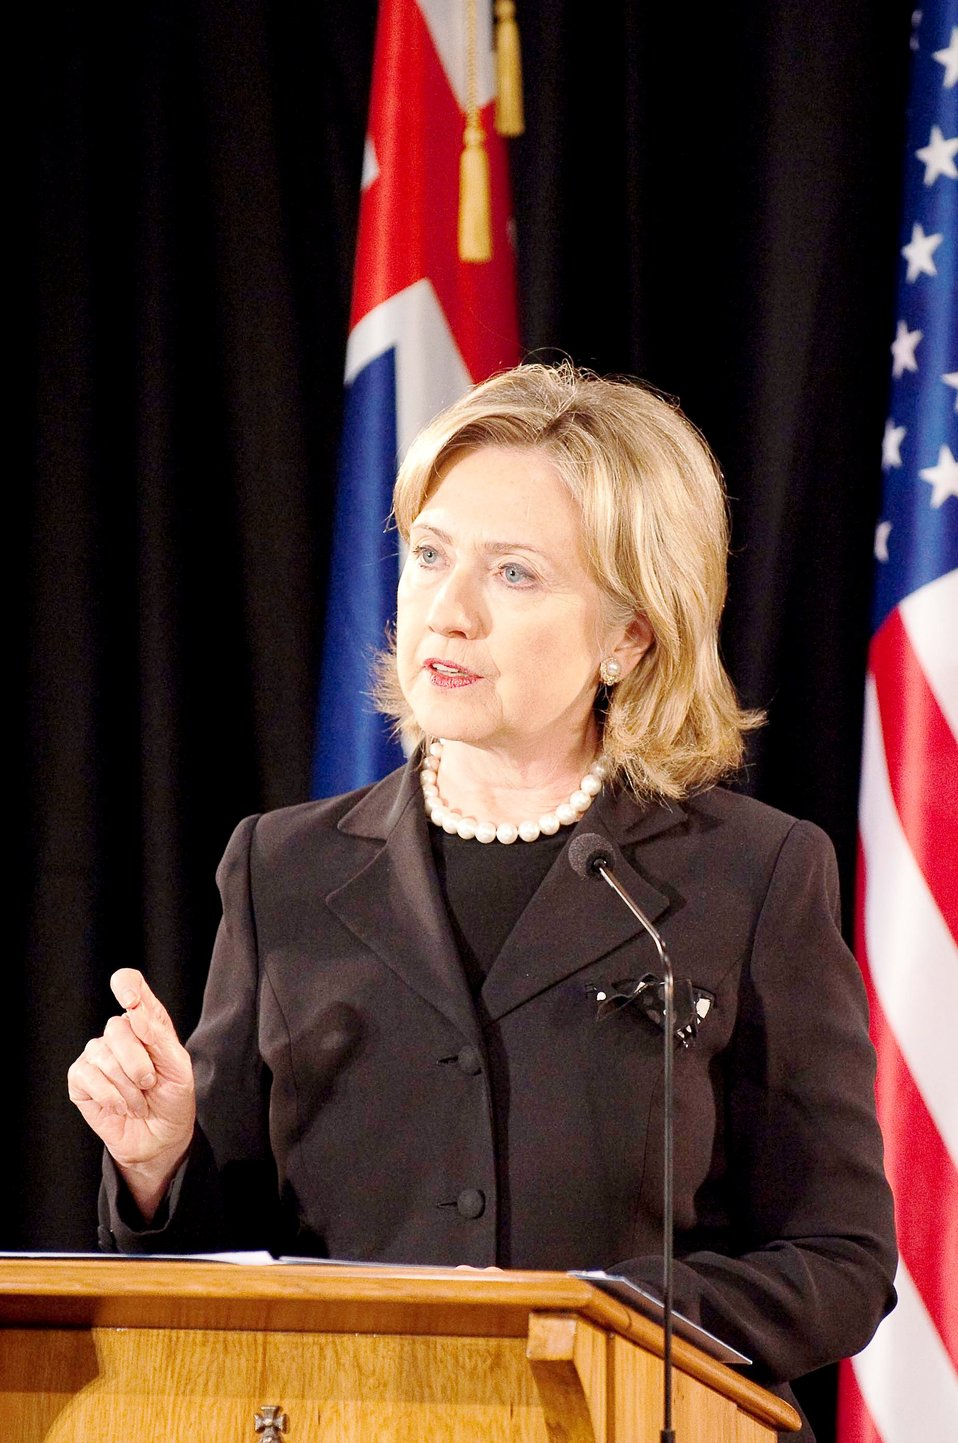 Secretary Clinton Speaks During a Joint Press Availability